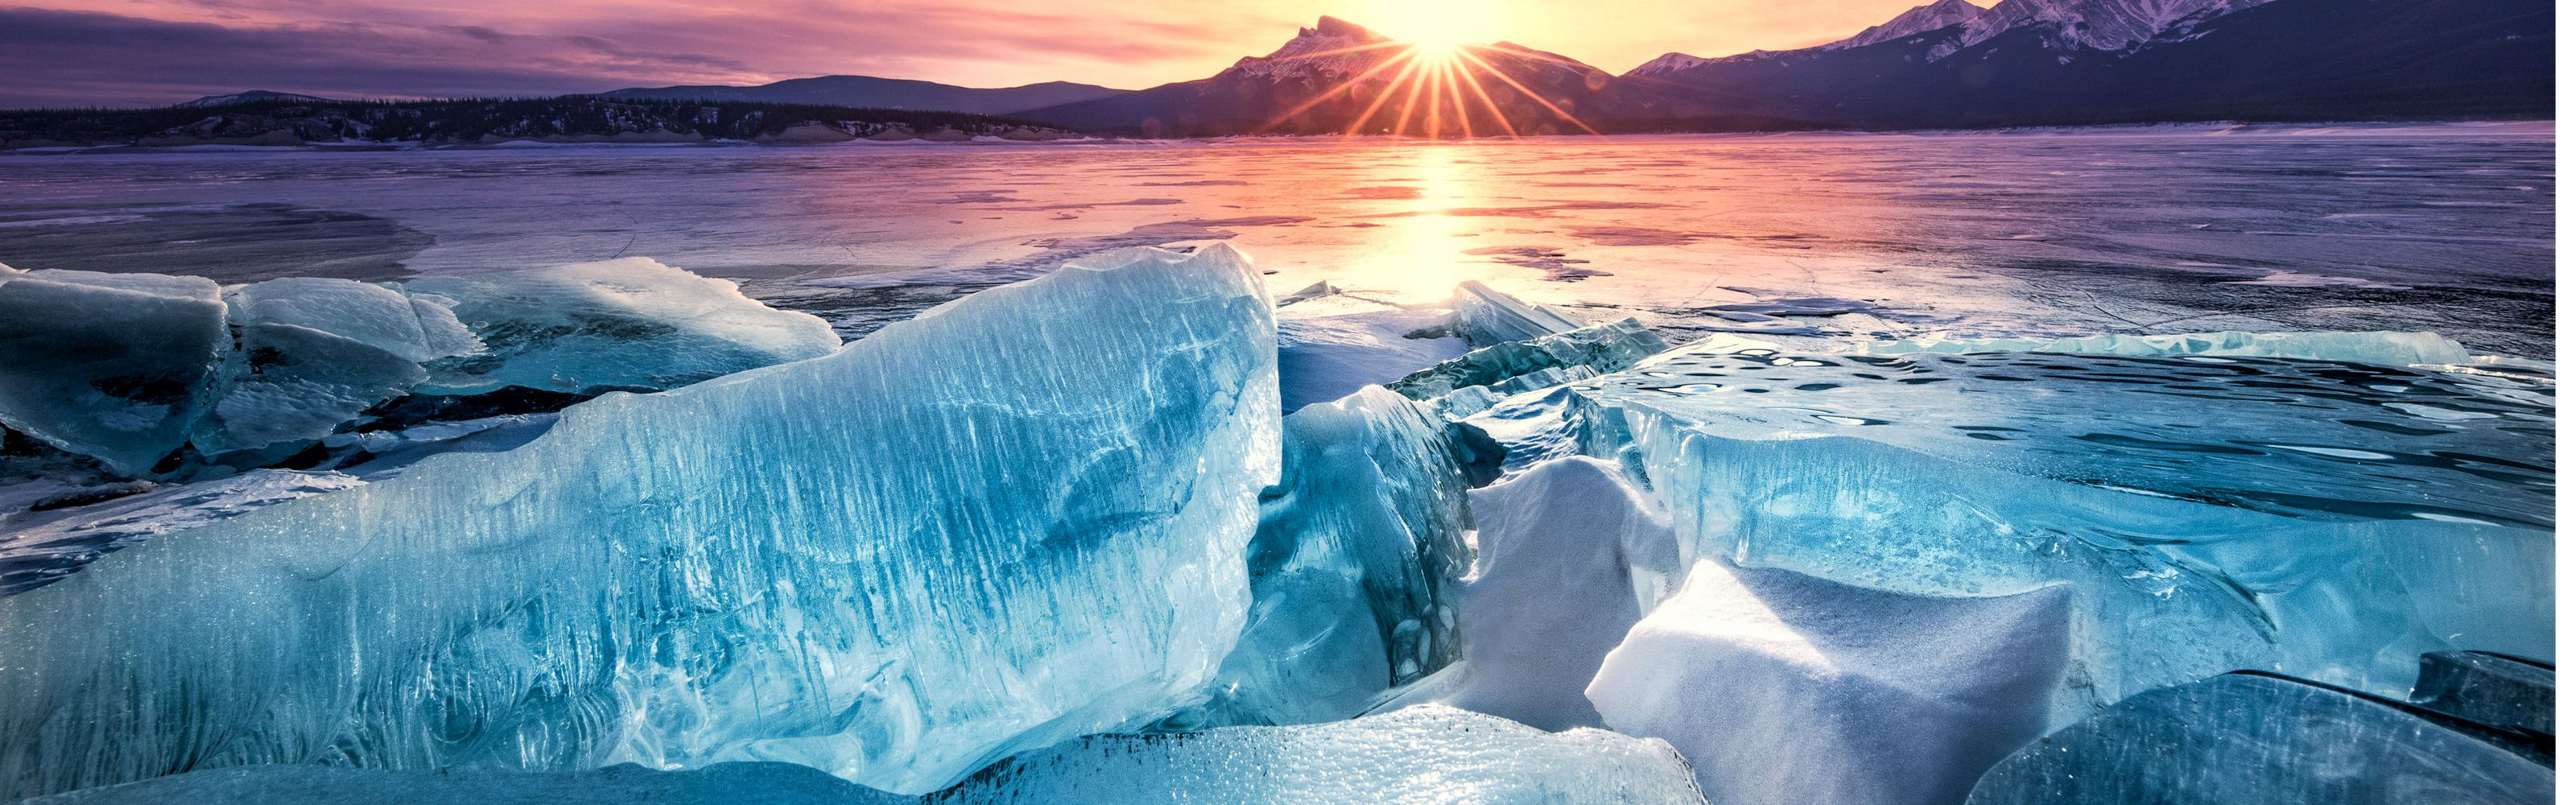 Ice breaks at dawn at Abraham Lake in Alberta, Canada. This photo was entered into The Nature Conservancy's 2018 Photo Contest.